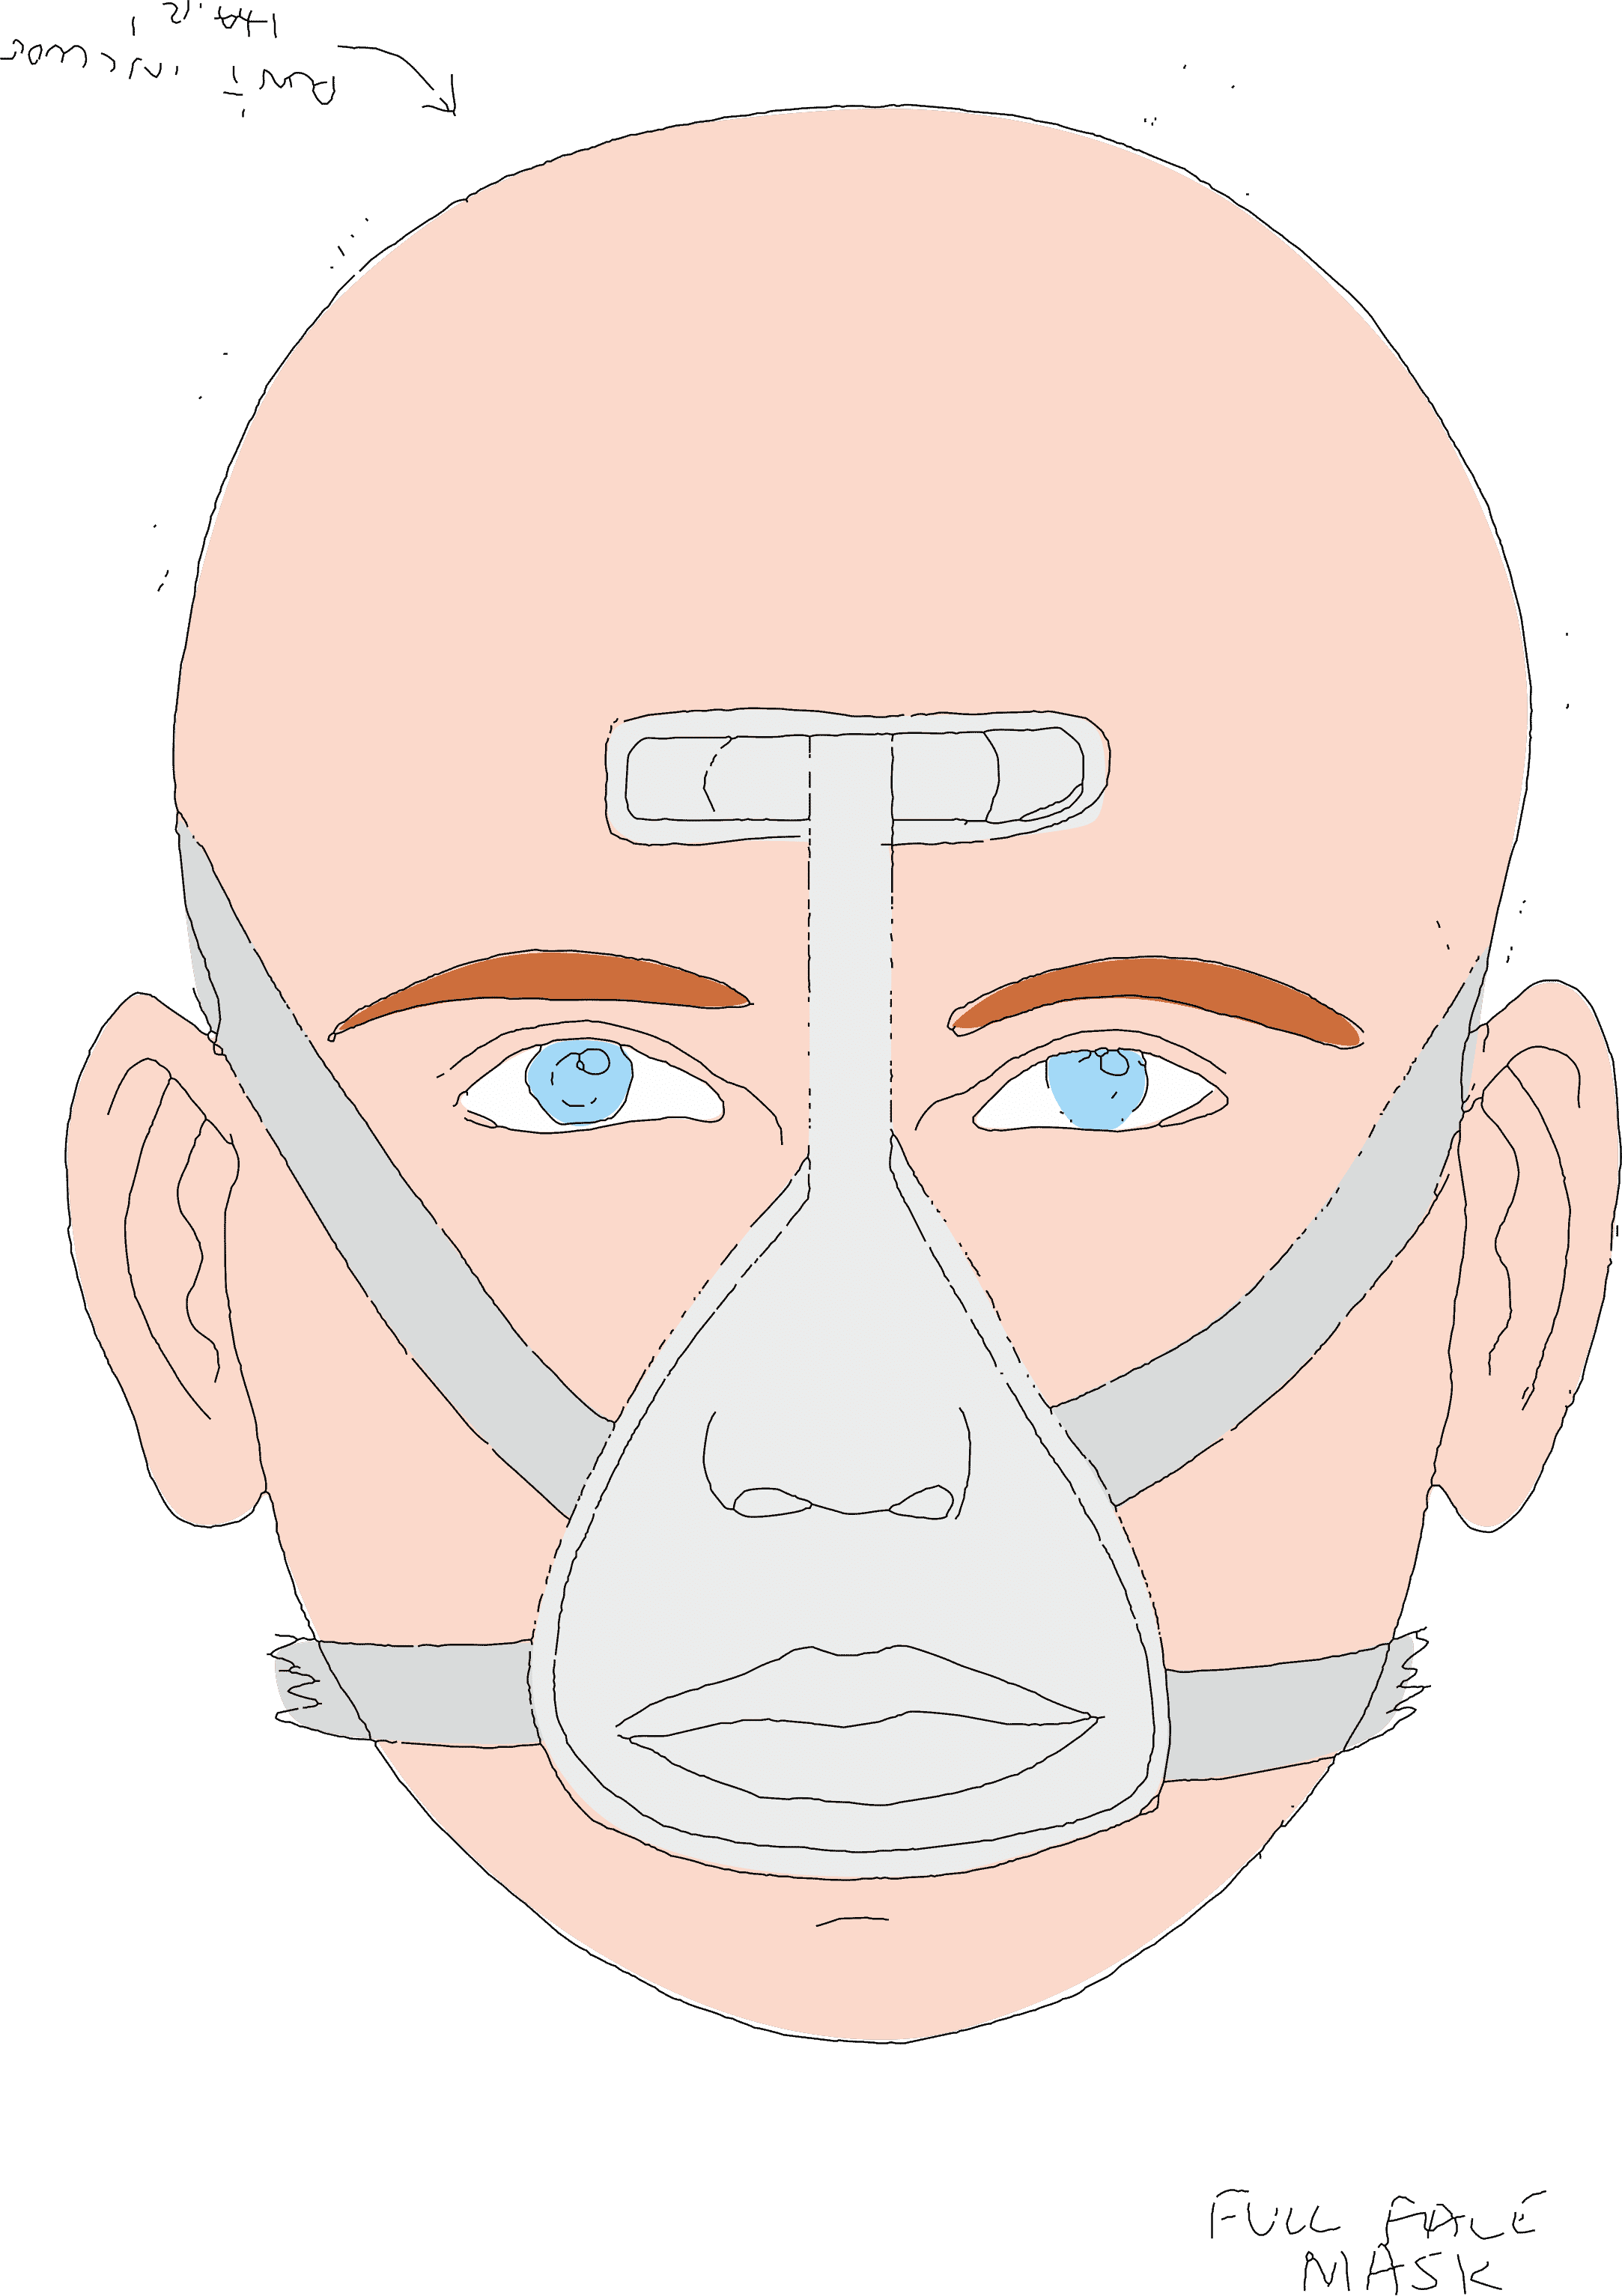 Full-face PAP mask sleep apnoea